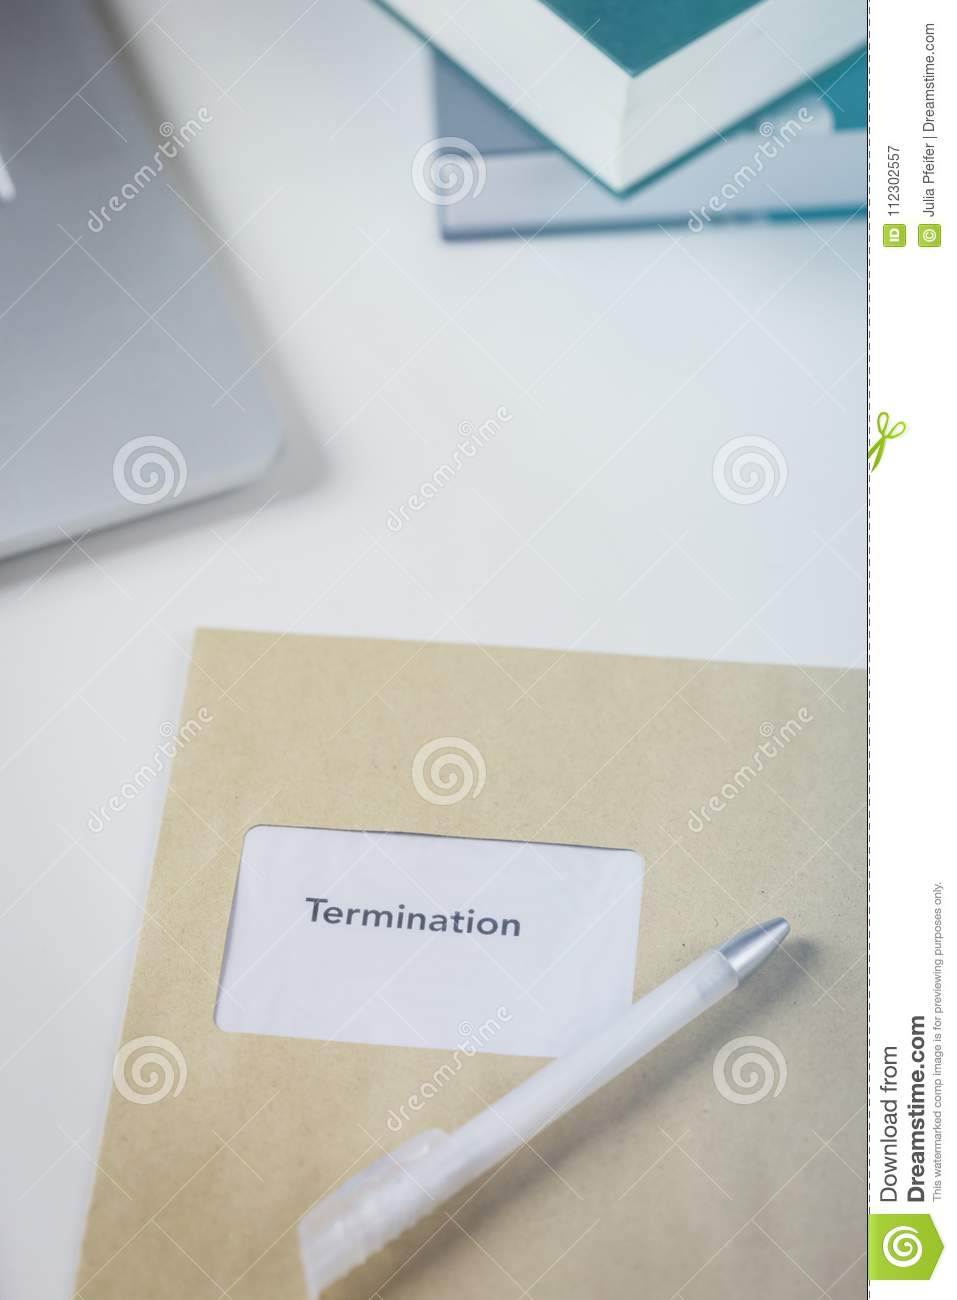 Redundancy Calculator Spreadsheet Within Termination Or Redundancy Letter In An Envelope Stock Image  Image